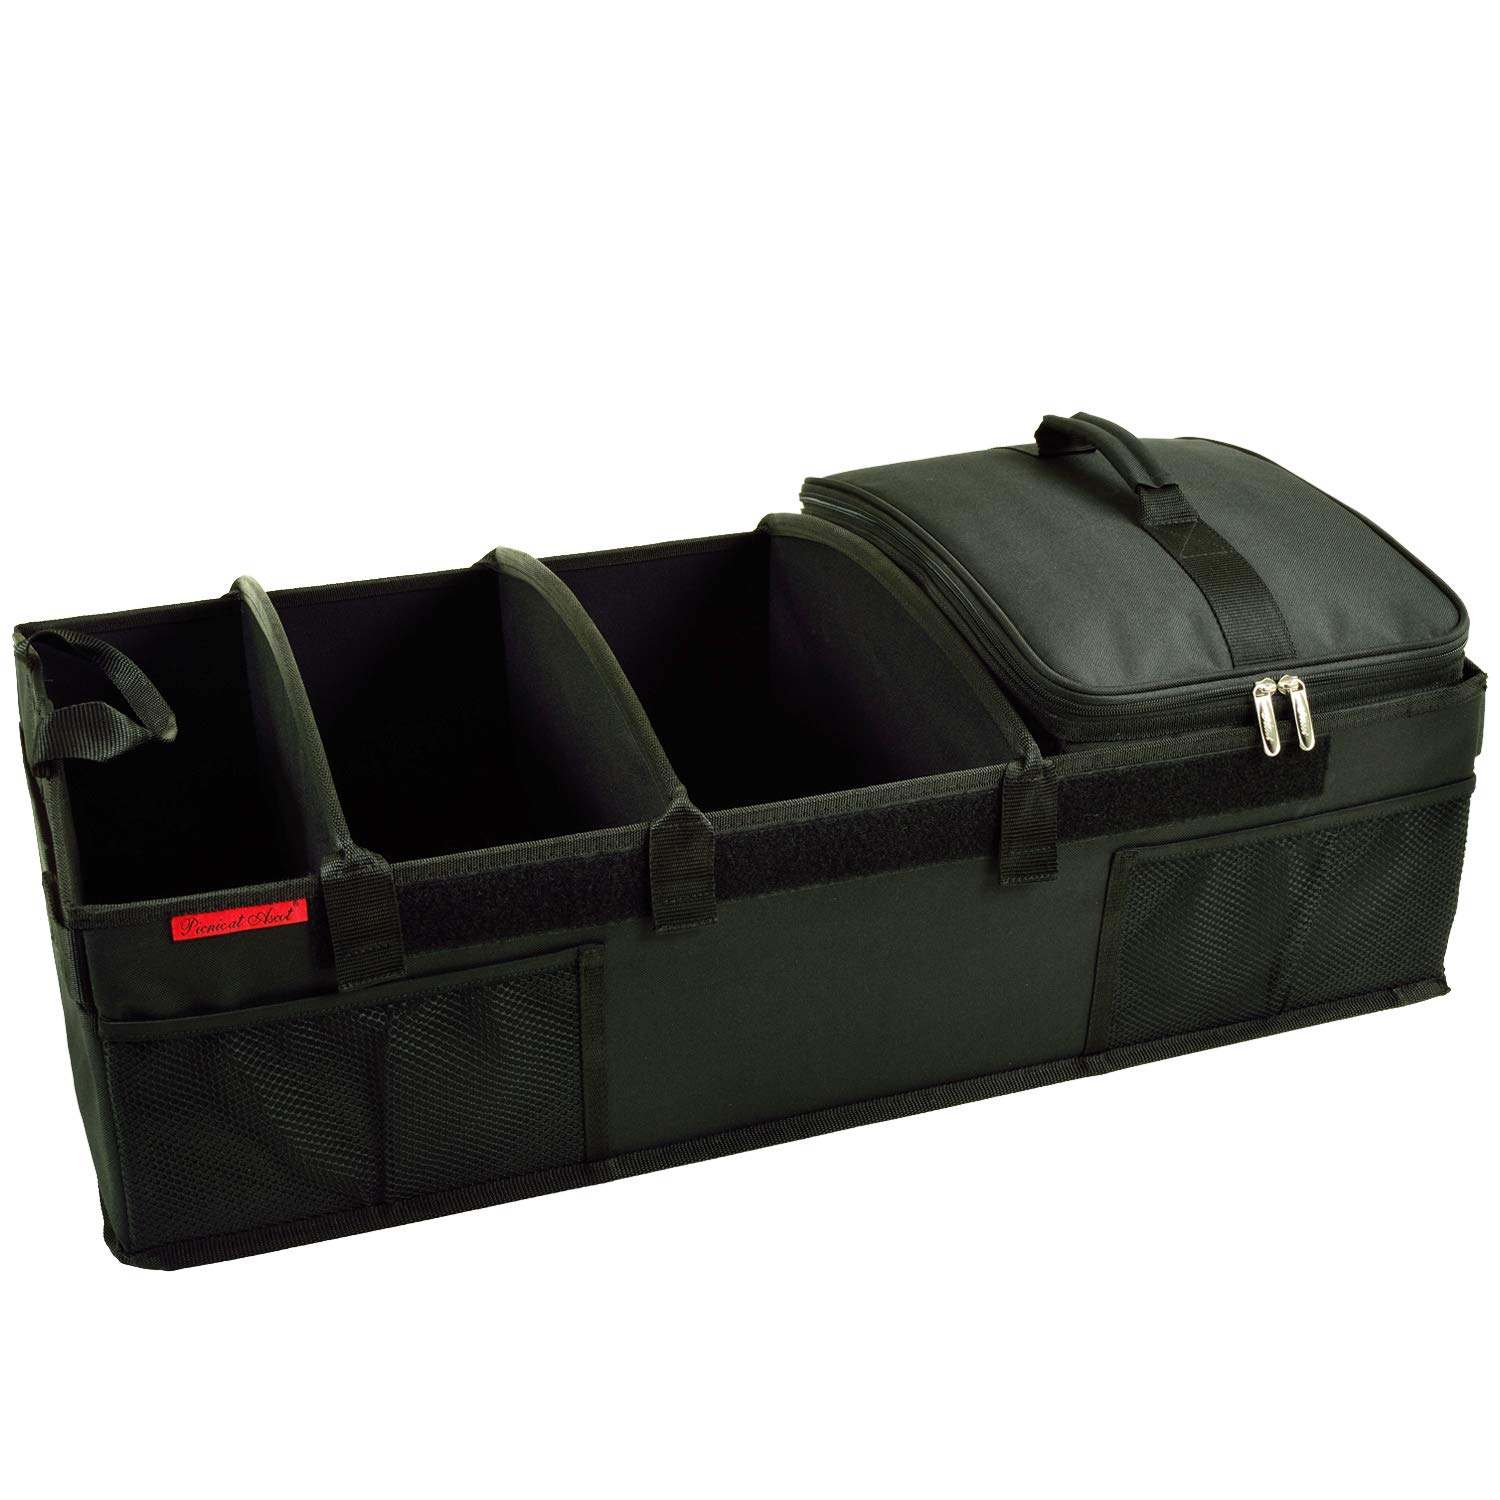 Picnic at Ascot 8034-BLK-Ultimate Heavy Duty Trunk Organizer with Cooler, 70 lb Capacity, Black